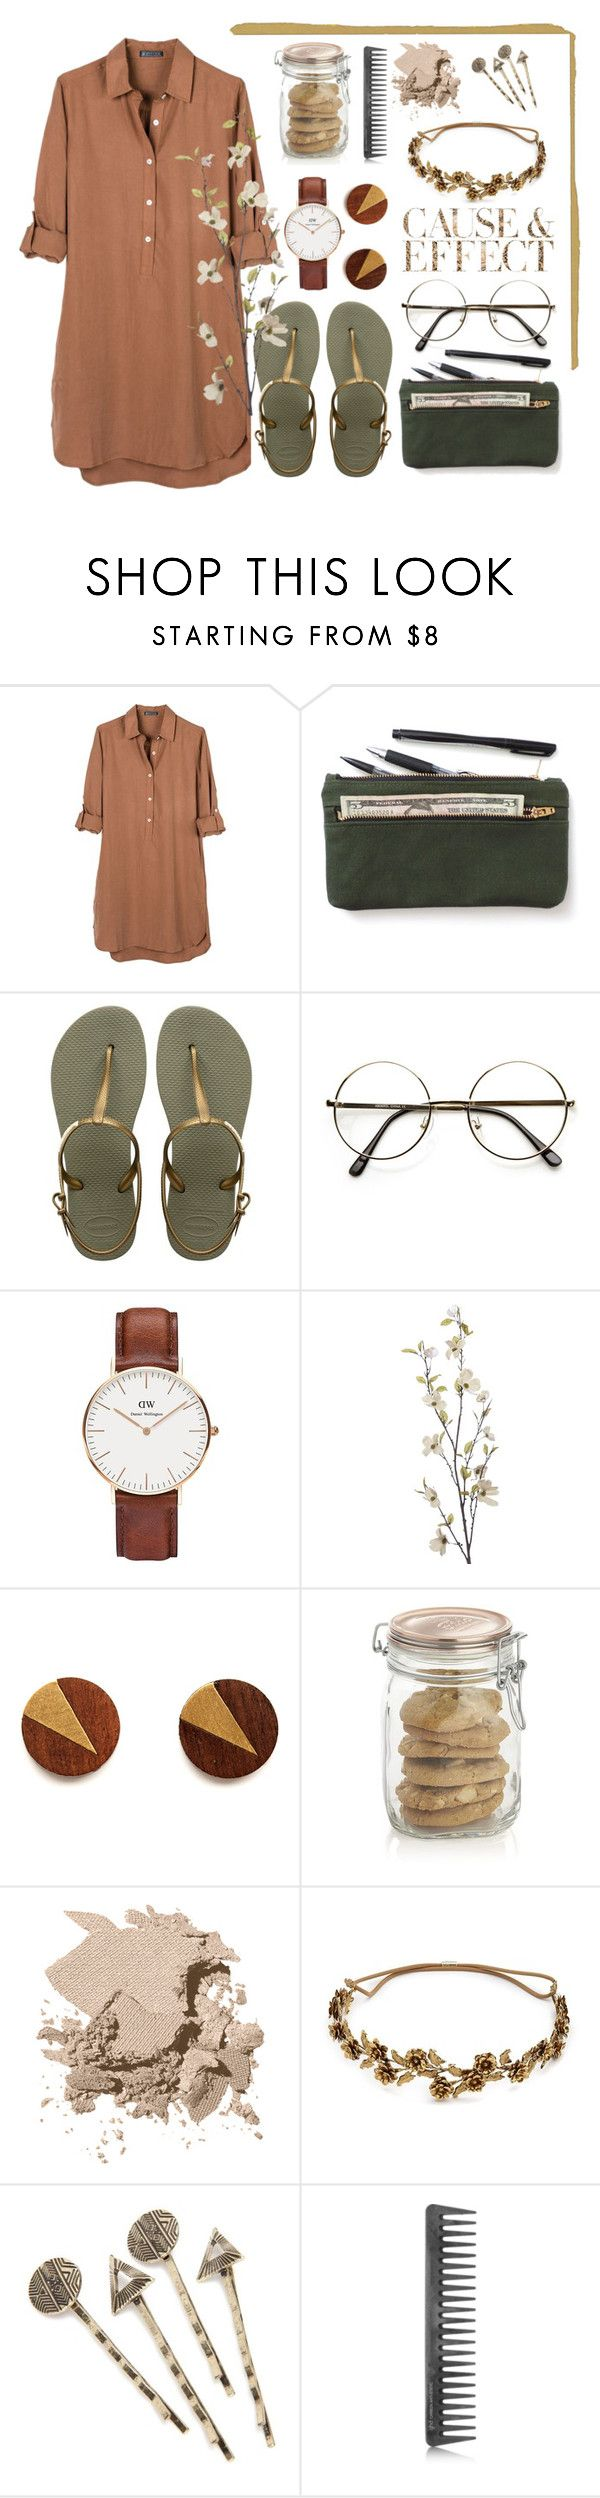 """Banbury Tencel dress"" by amn-d ❤ liked on Polyvore featuring United by Blue, Havaianas, ZeroUV, Daniel Wellington, Pier 1 Imports, Crate and Barrel, Bobbi Brown Cosmetics, Envi:, Jennifer Behr and Red Camel"